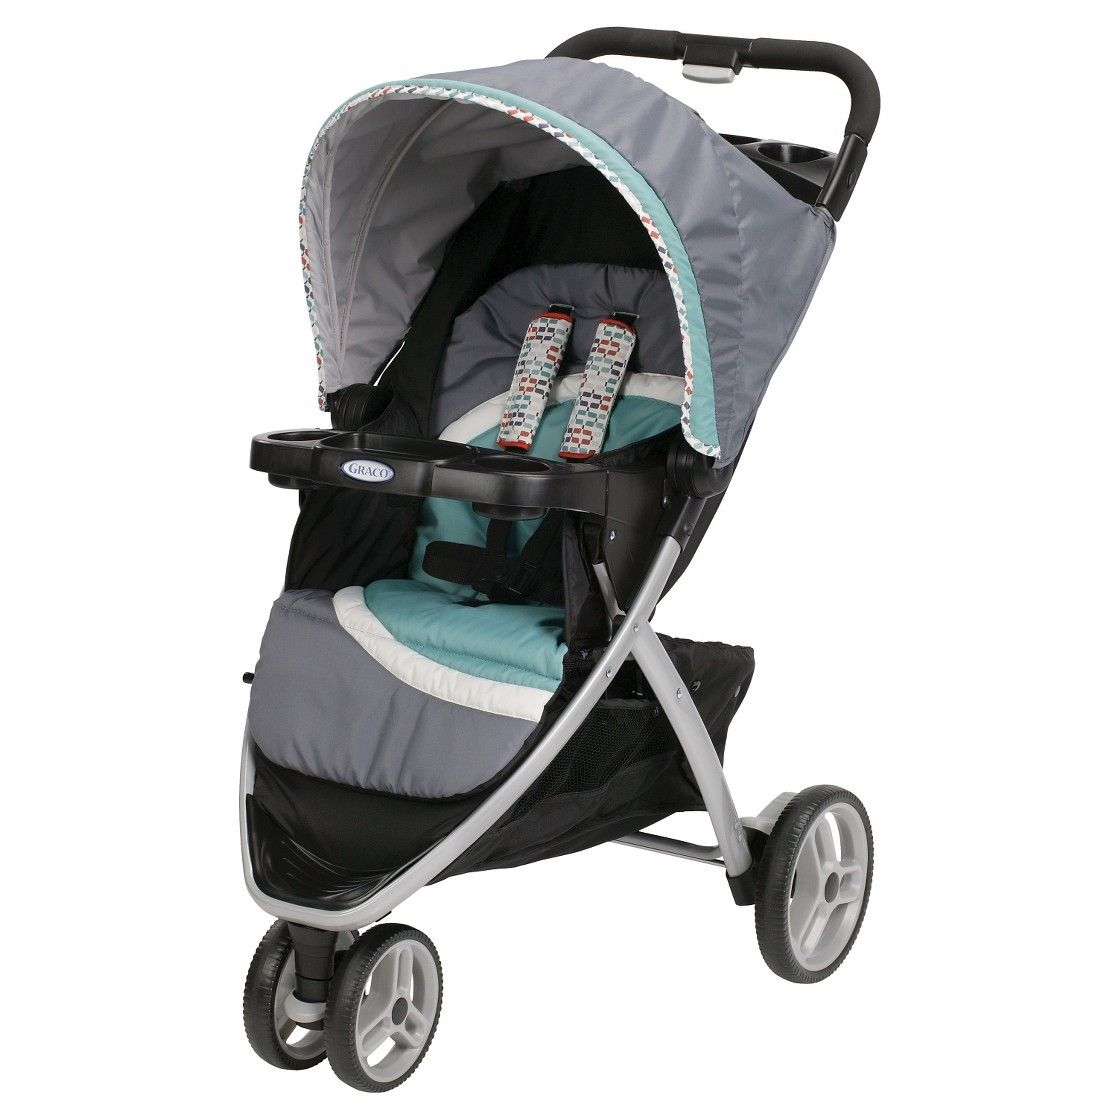 Graco Pace Click Connect Stroller Click connect stroller